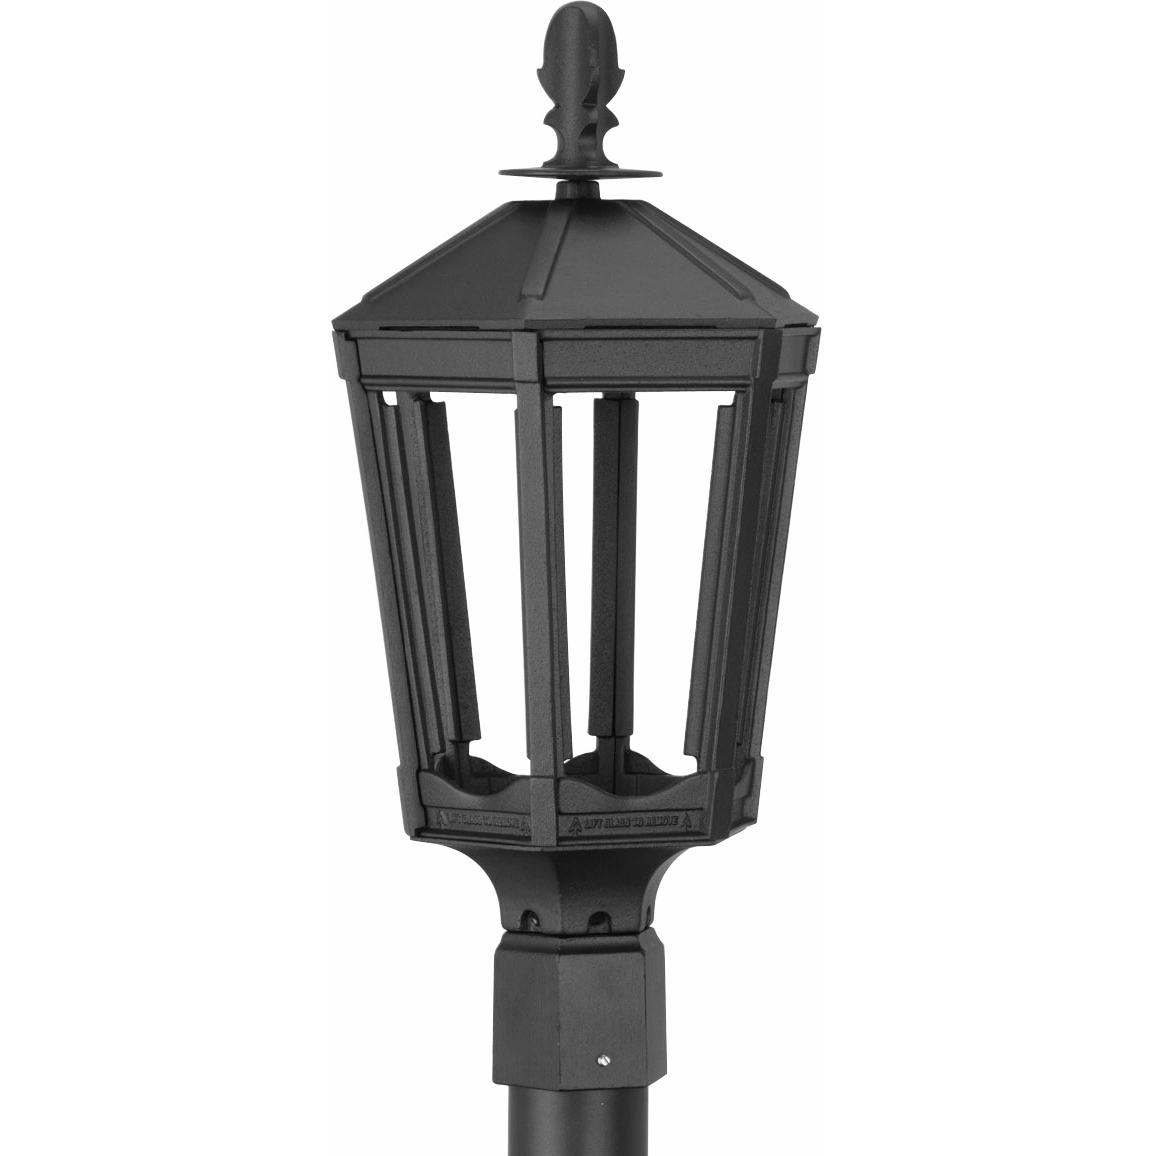 Picture of American Gas Lamp Works GL1000 Cast Aluminum Electronic Ignition Natural Gas Light With Open Flame Burner For Post Mount